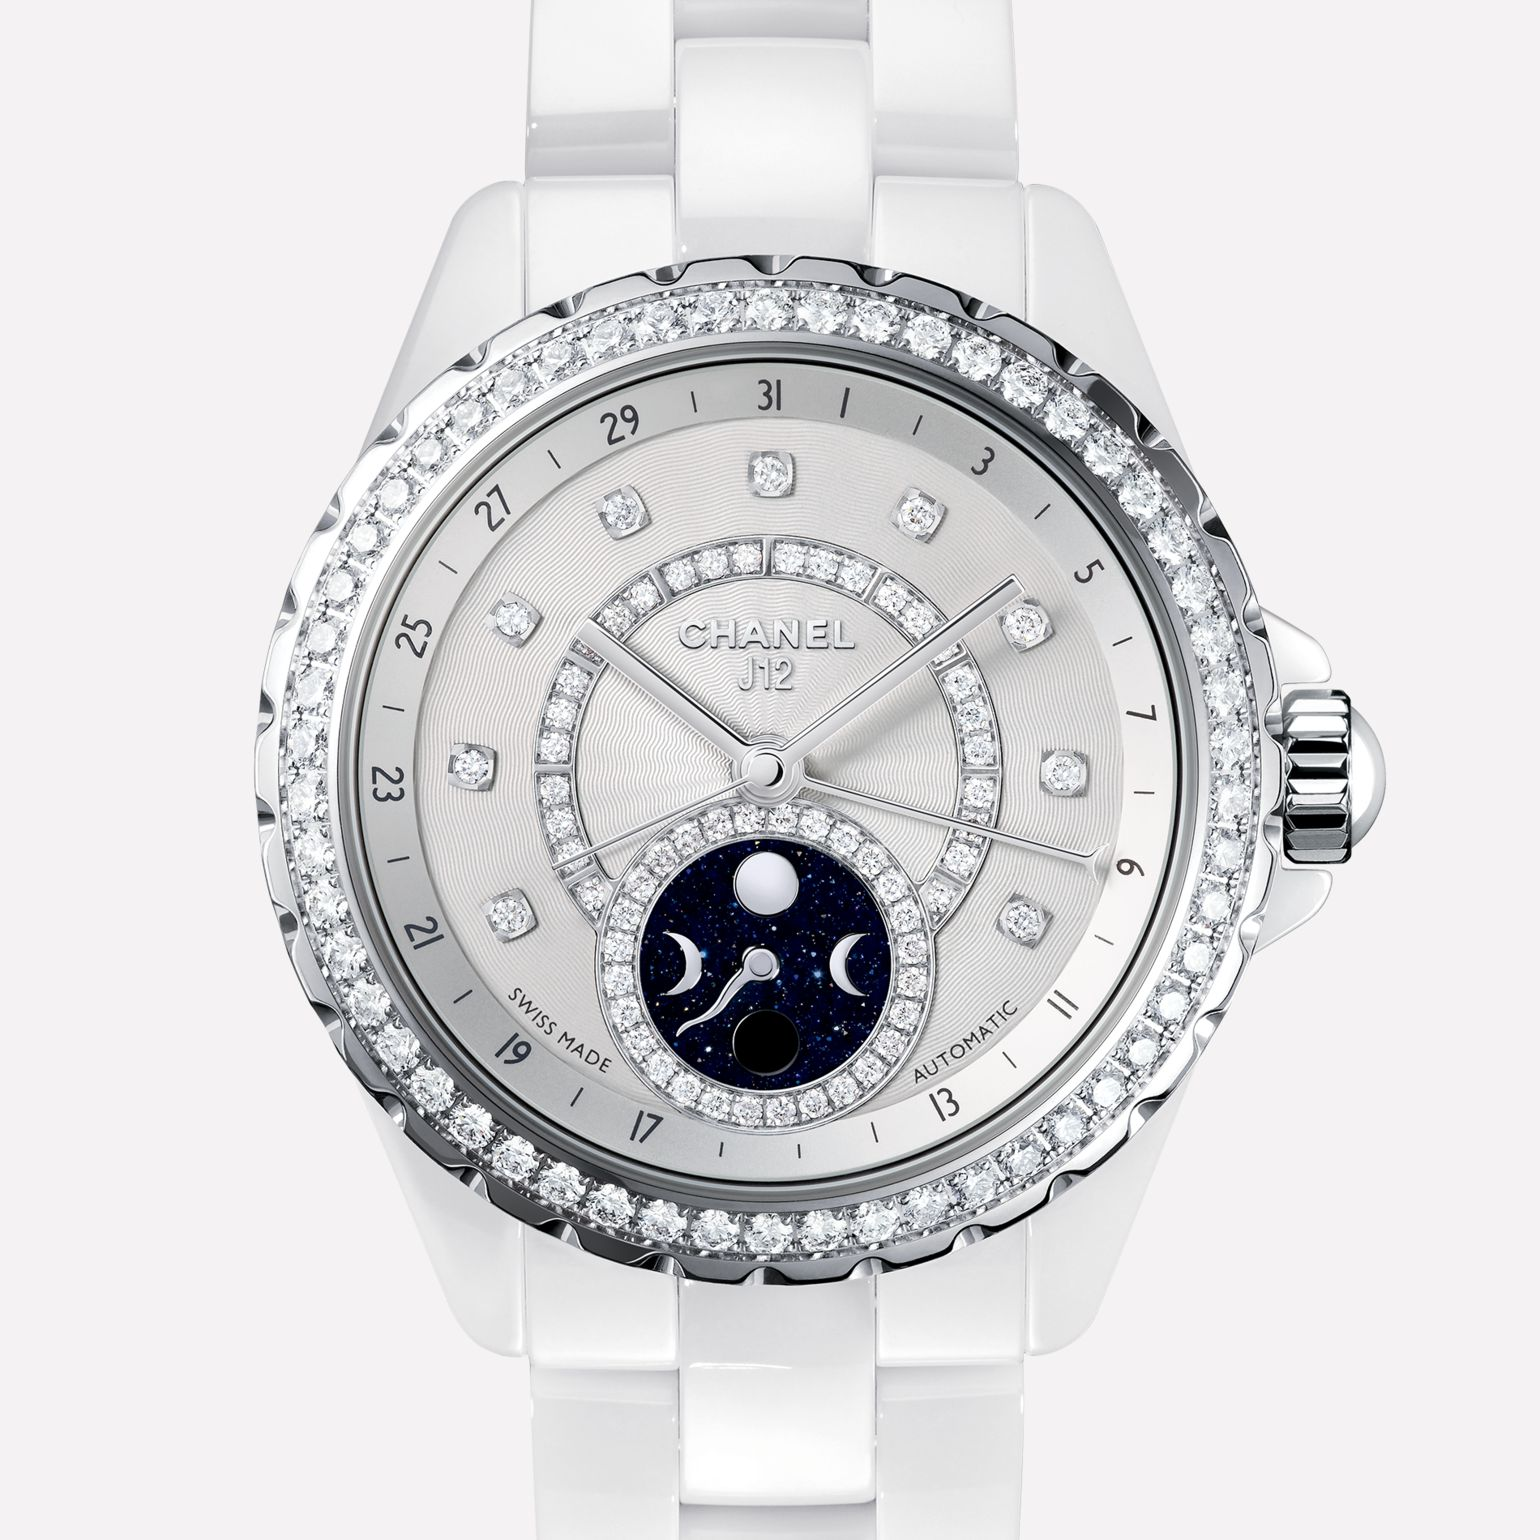 J12 Moonphase Watch White ceramic and steel, bezel, indicators, and moonphase indicator set with diamonds